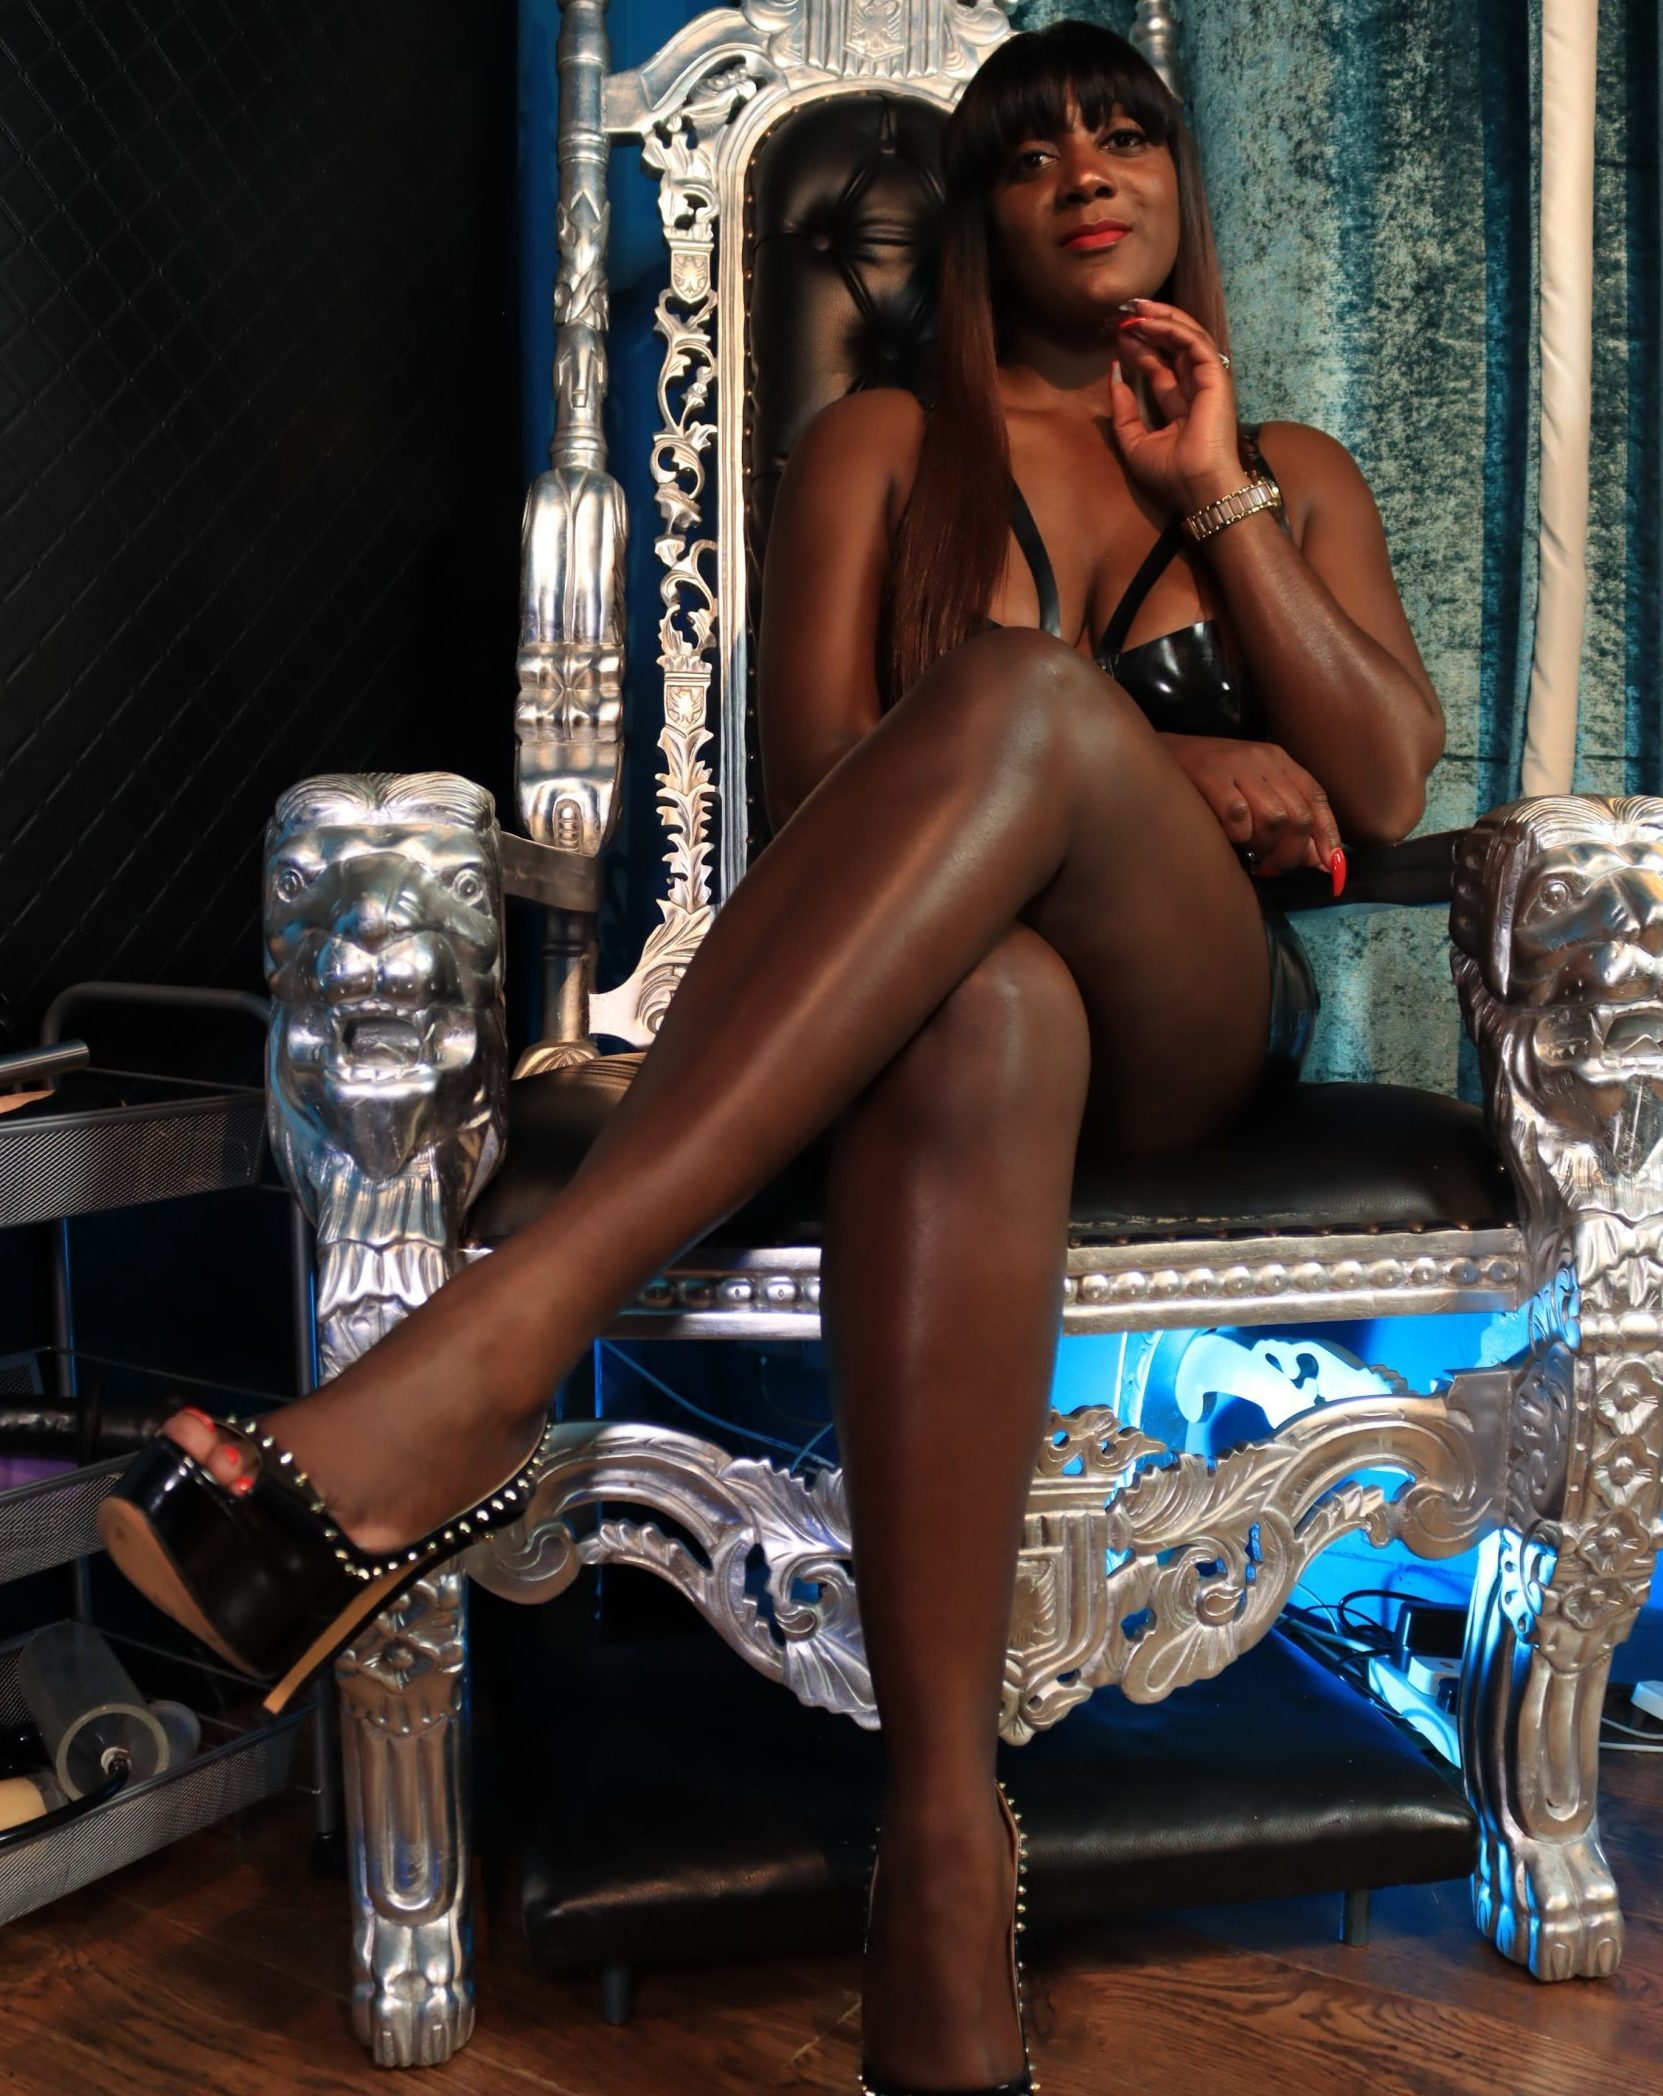 This is the official website of Mistress Lorraine